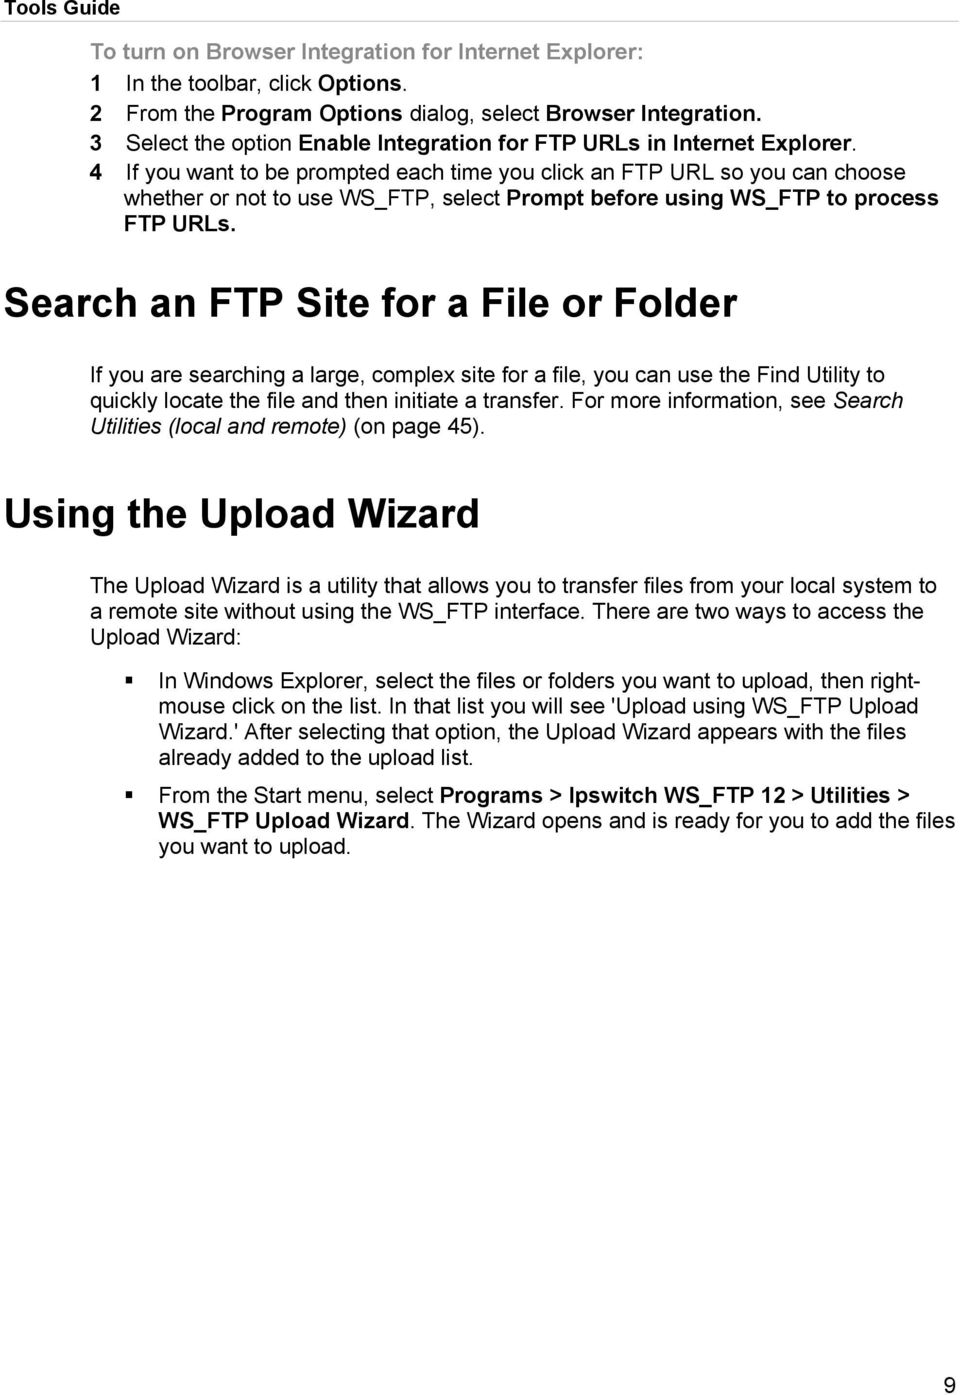 4 If you want to be prompted each time you click an FTP URL so you can choose whether or not to use WS_FTP, select Prompt before using WS_FTP to process FTP URLs.